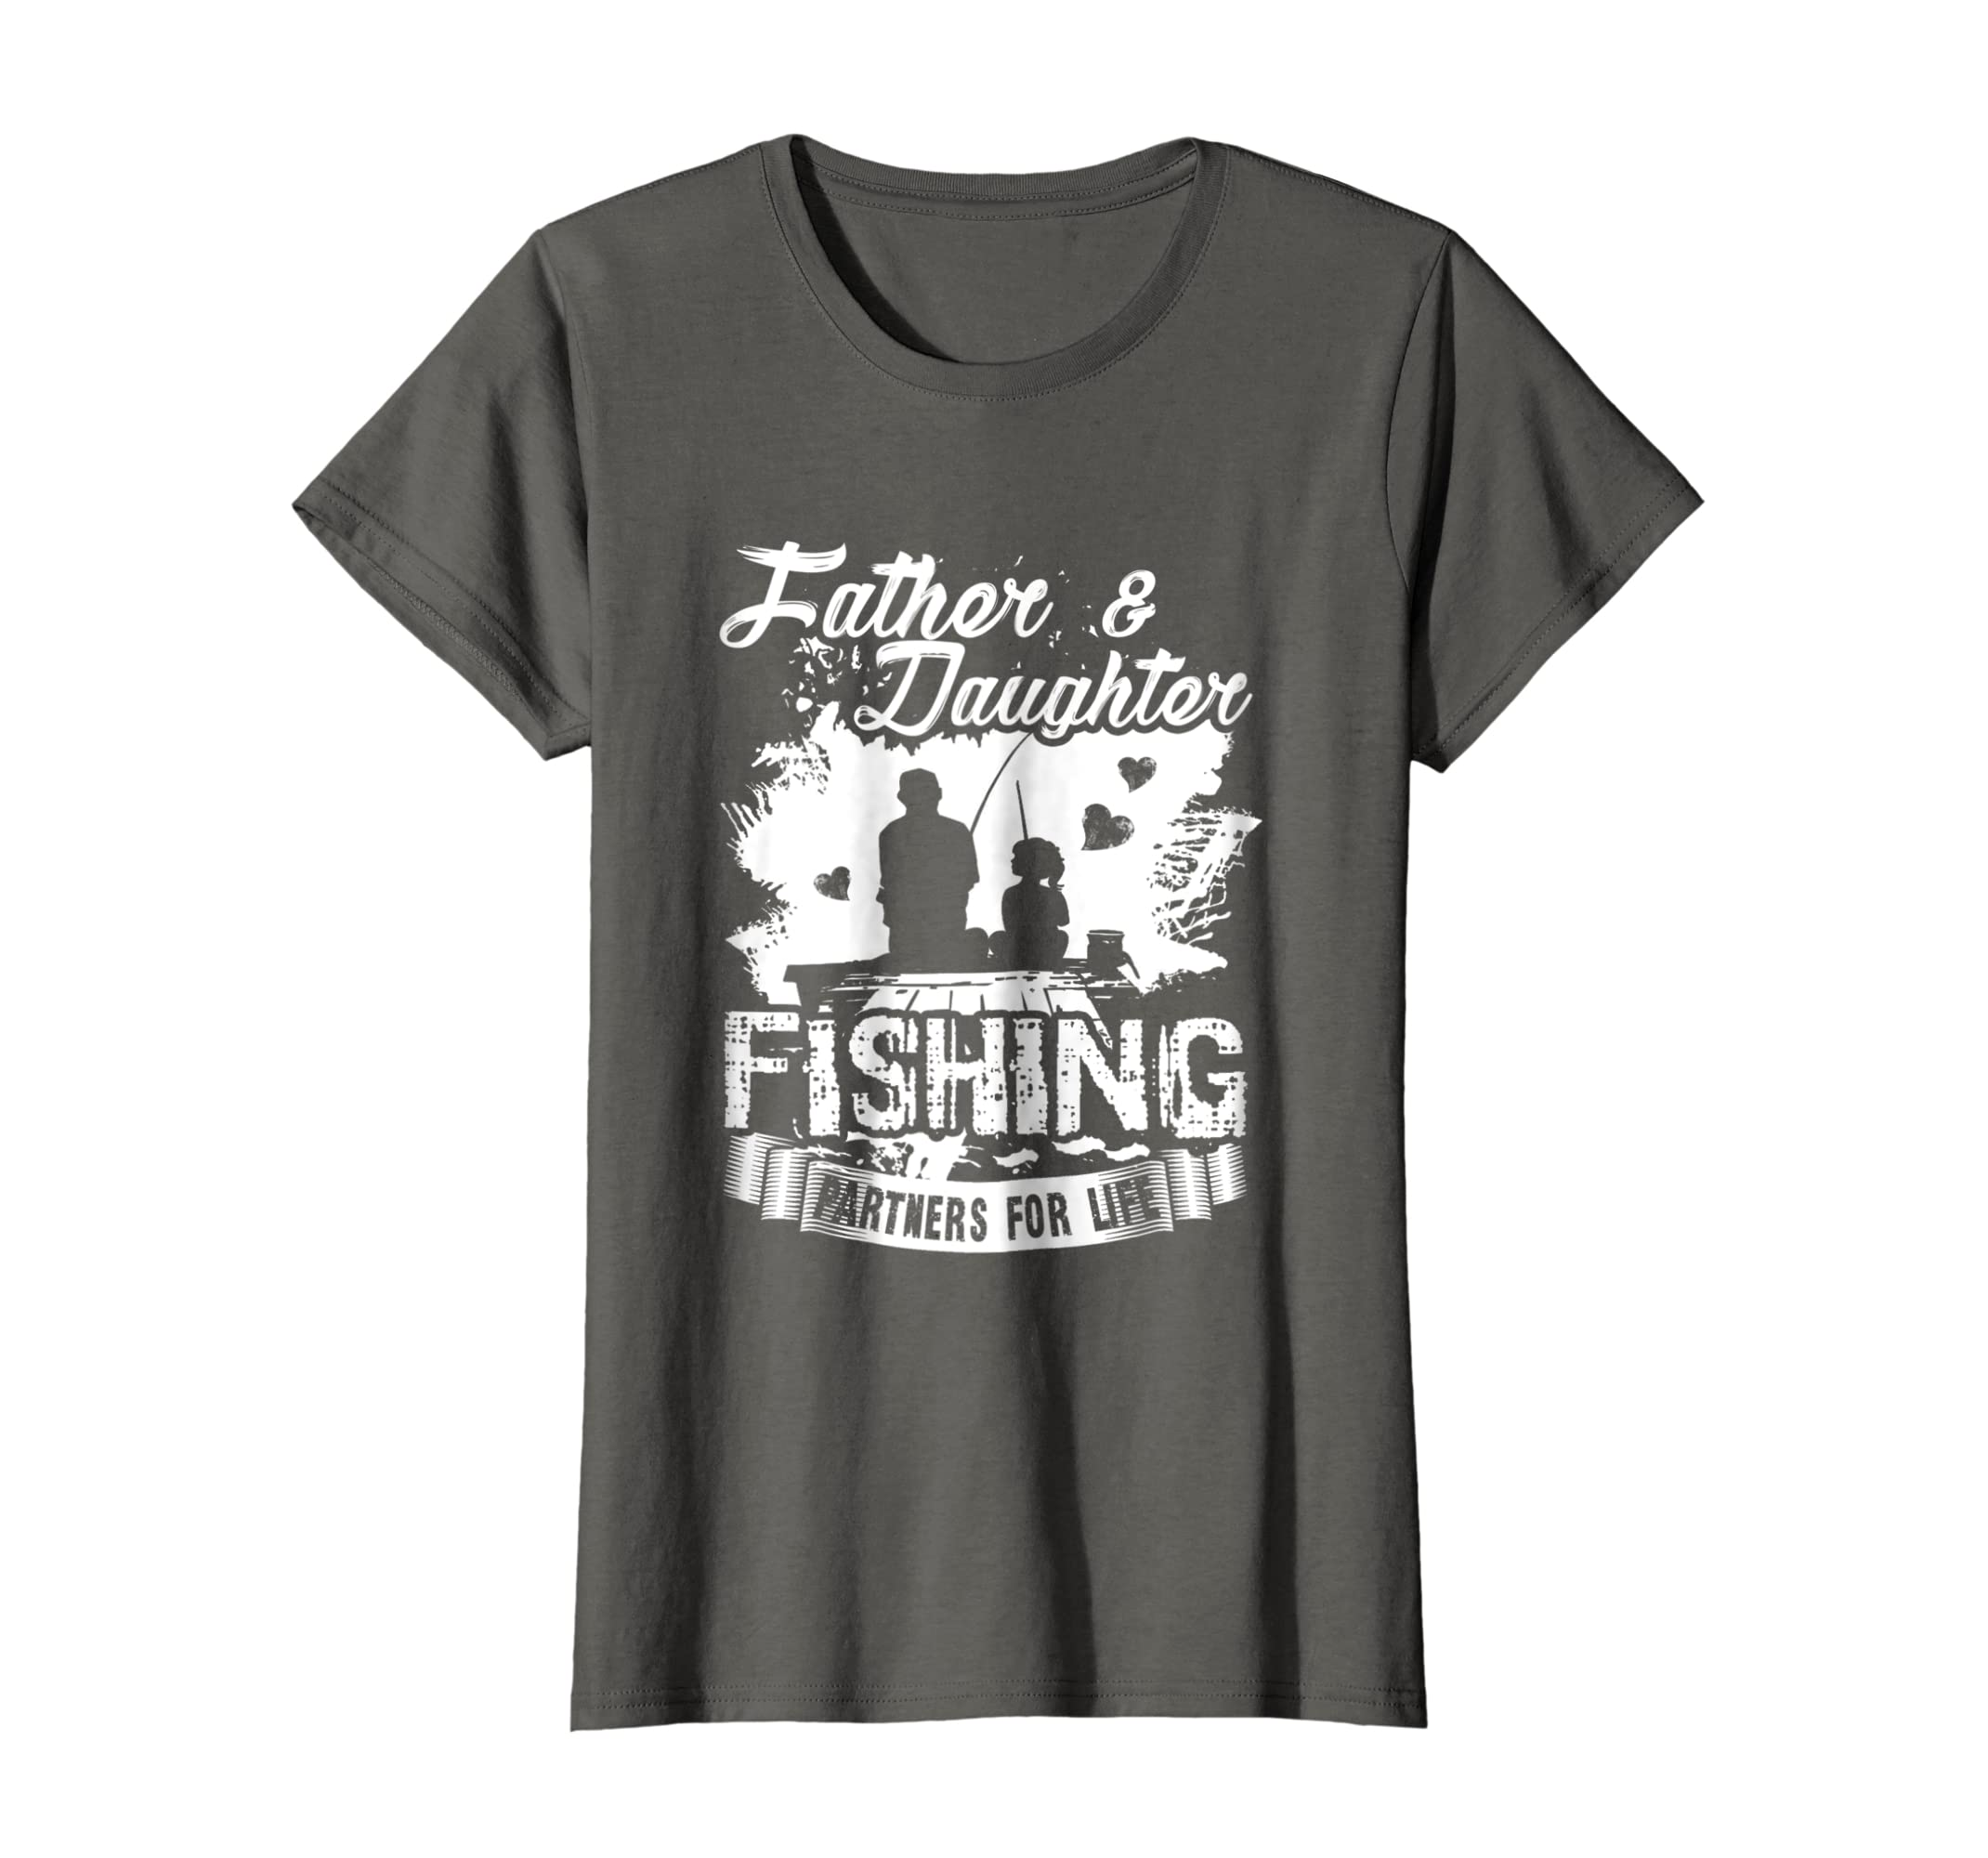 39014831 Amazon.com: Father Daughter Fishing Partners For Life Shirts: Clothing